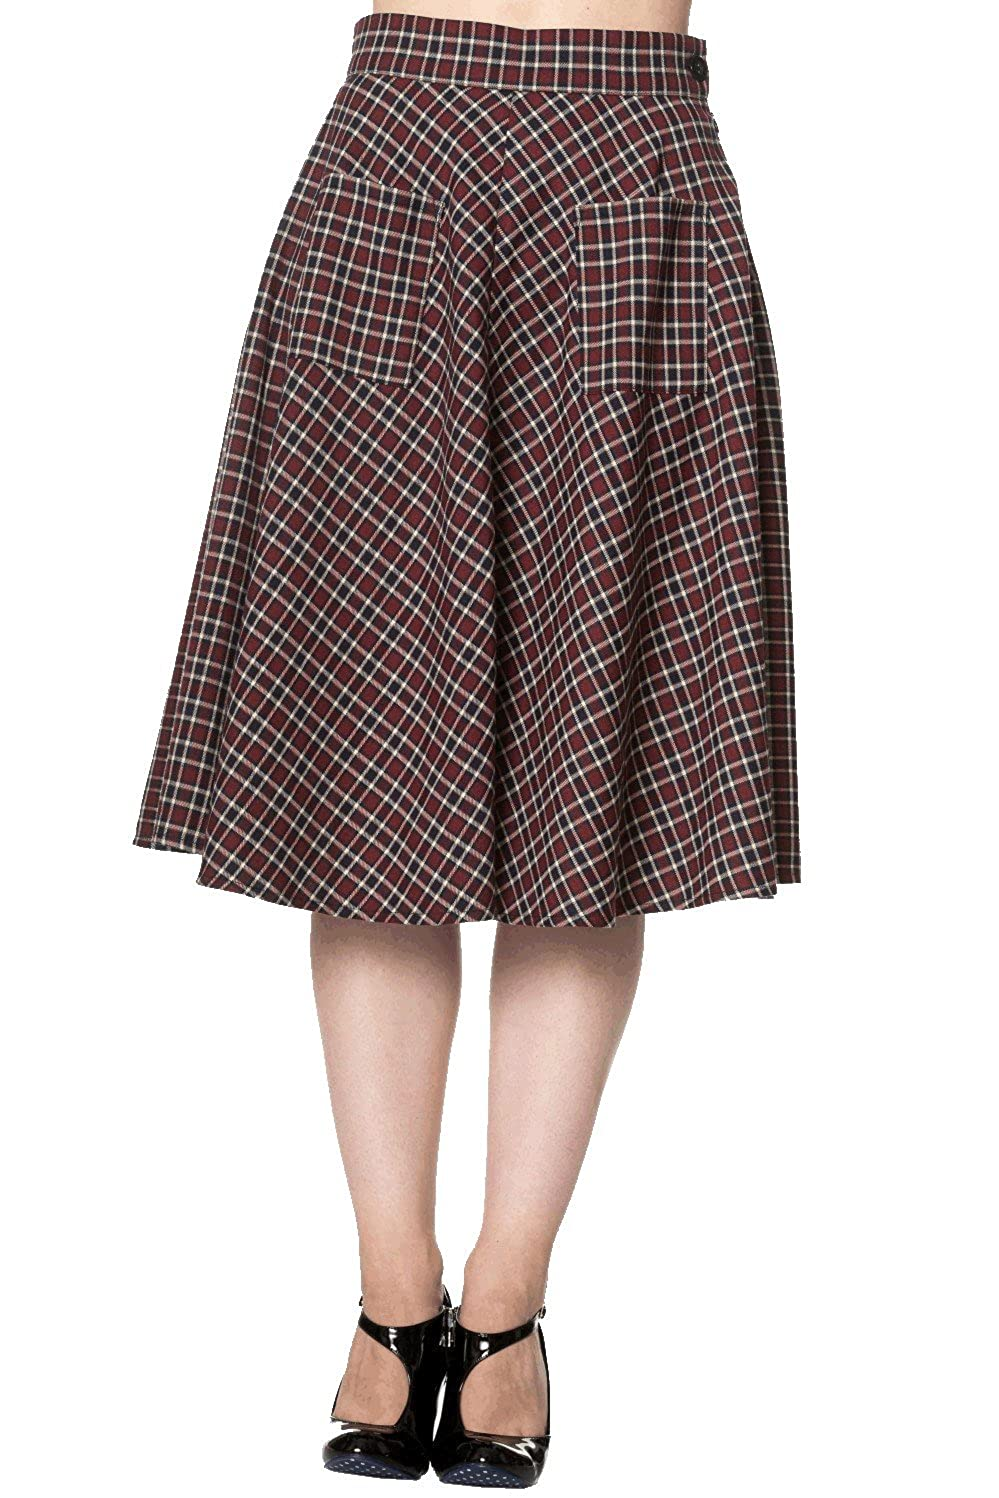 1940s Style Skirts- Vintage High Waisted Skirts Banned Apparel - Apple of My Eye Skirt $51.73 AT vintagedancer.com